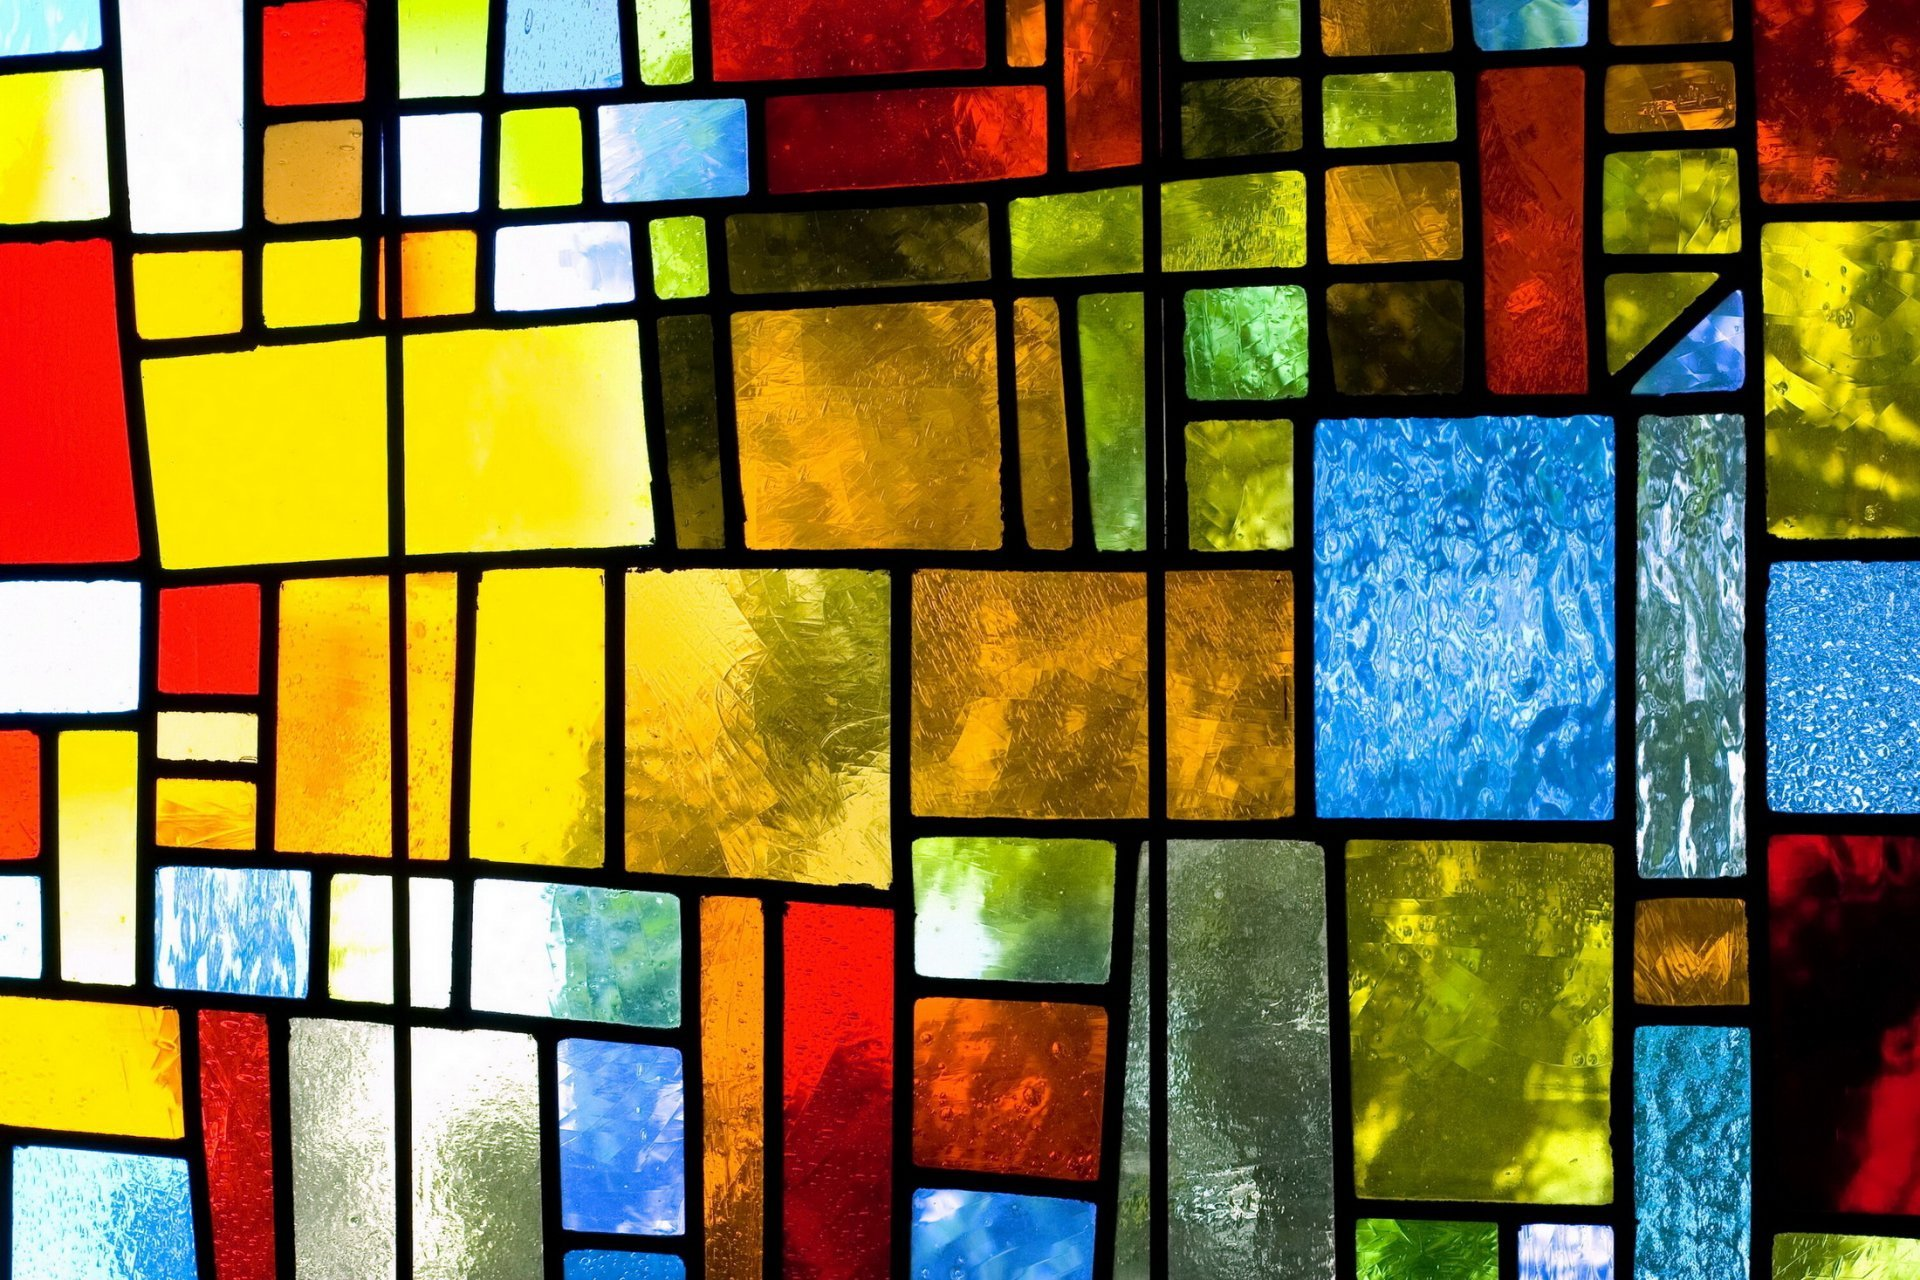 stained glass window wallpaper - sf wallpaper